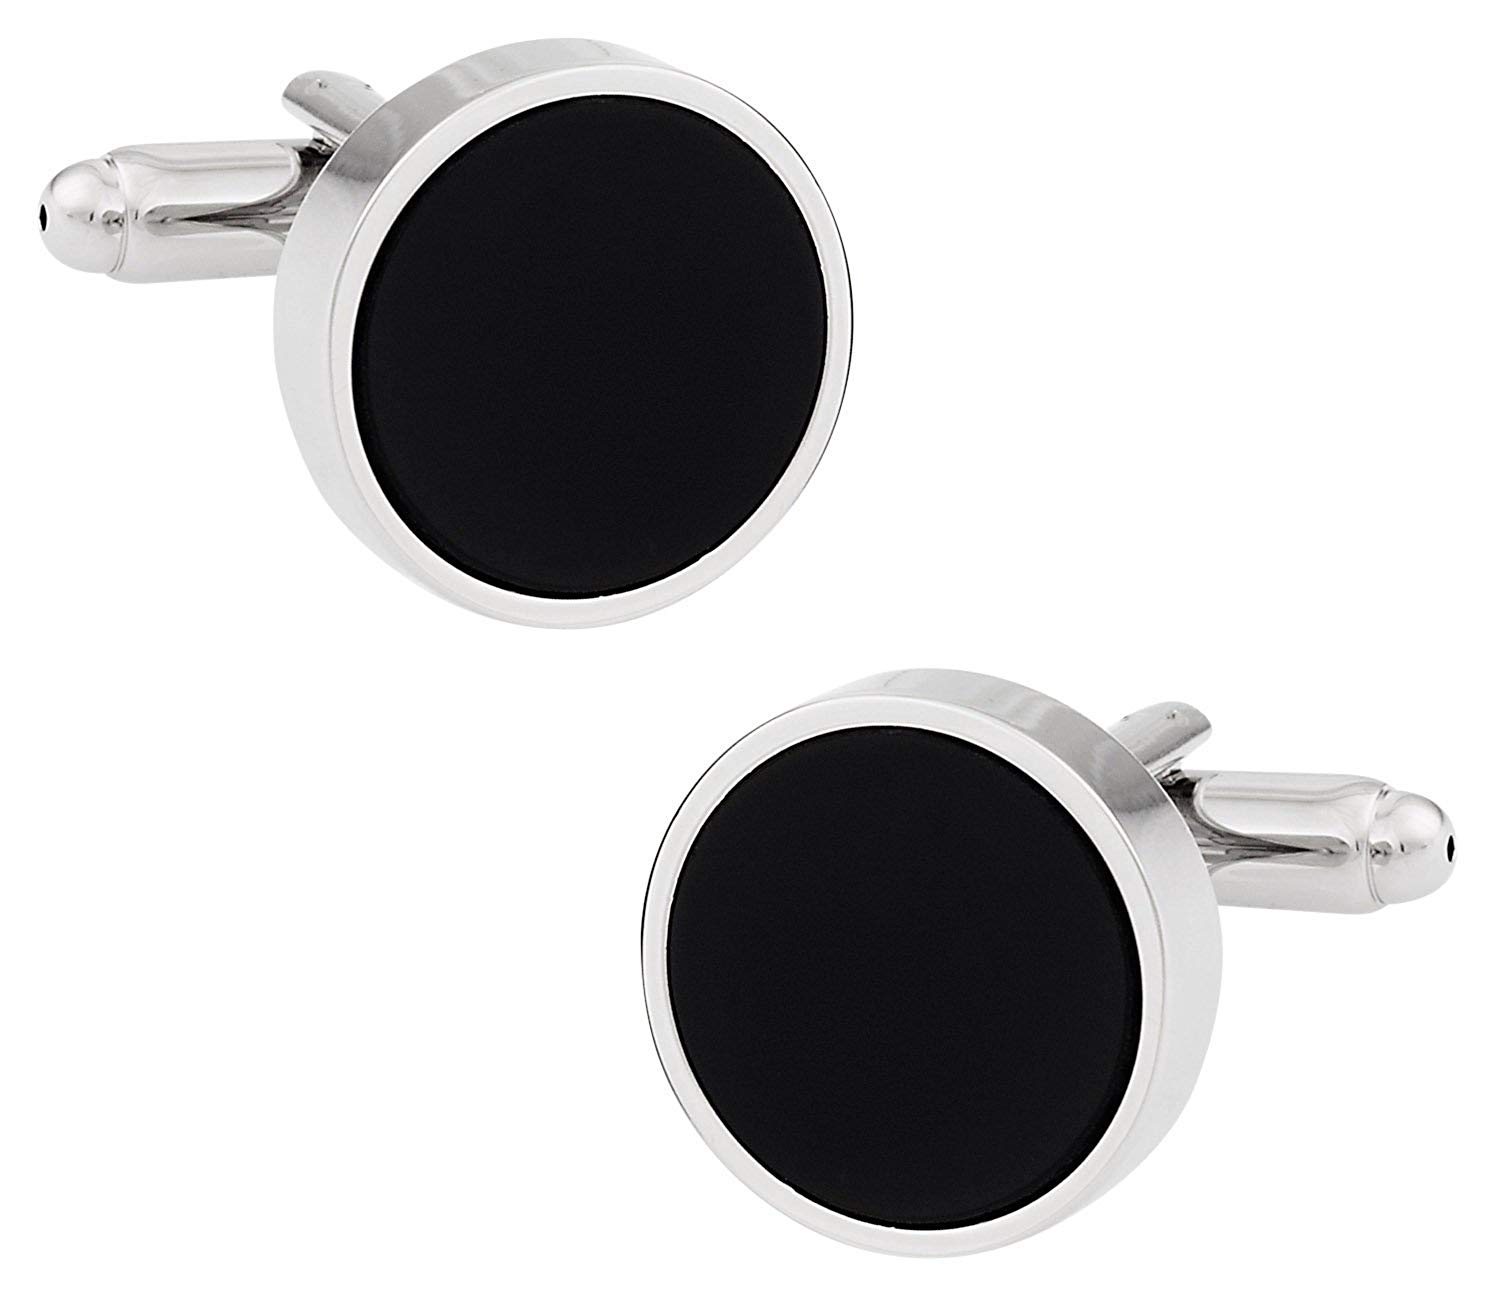 Cuff-Daddy Black Enamel Cufflinks Silver-Tone with Presentation Box